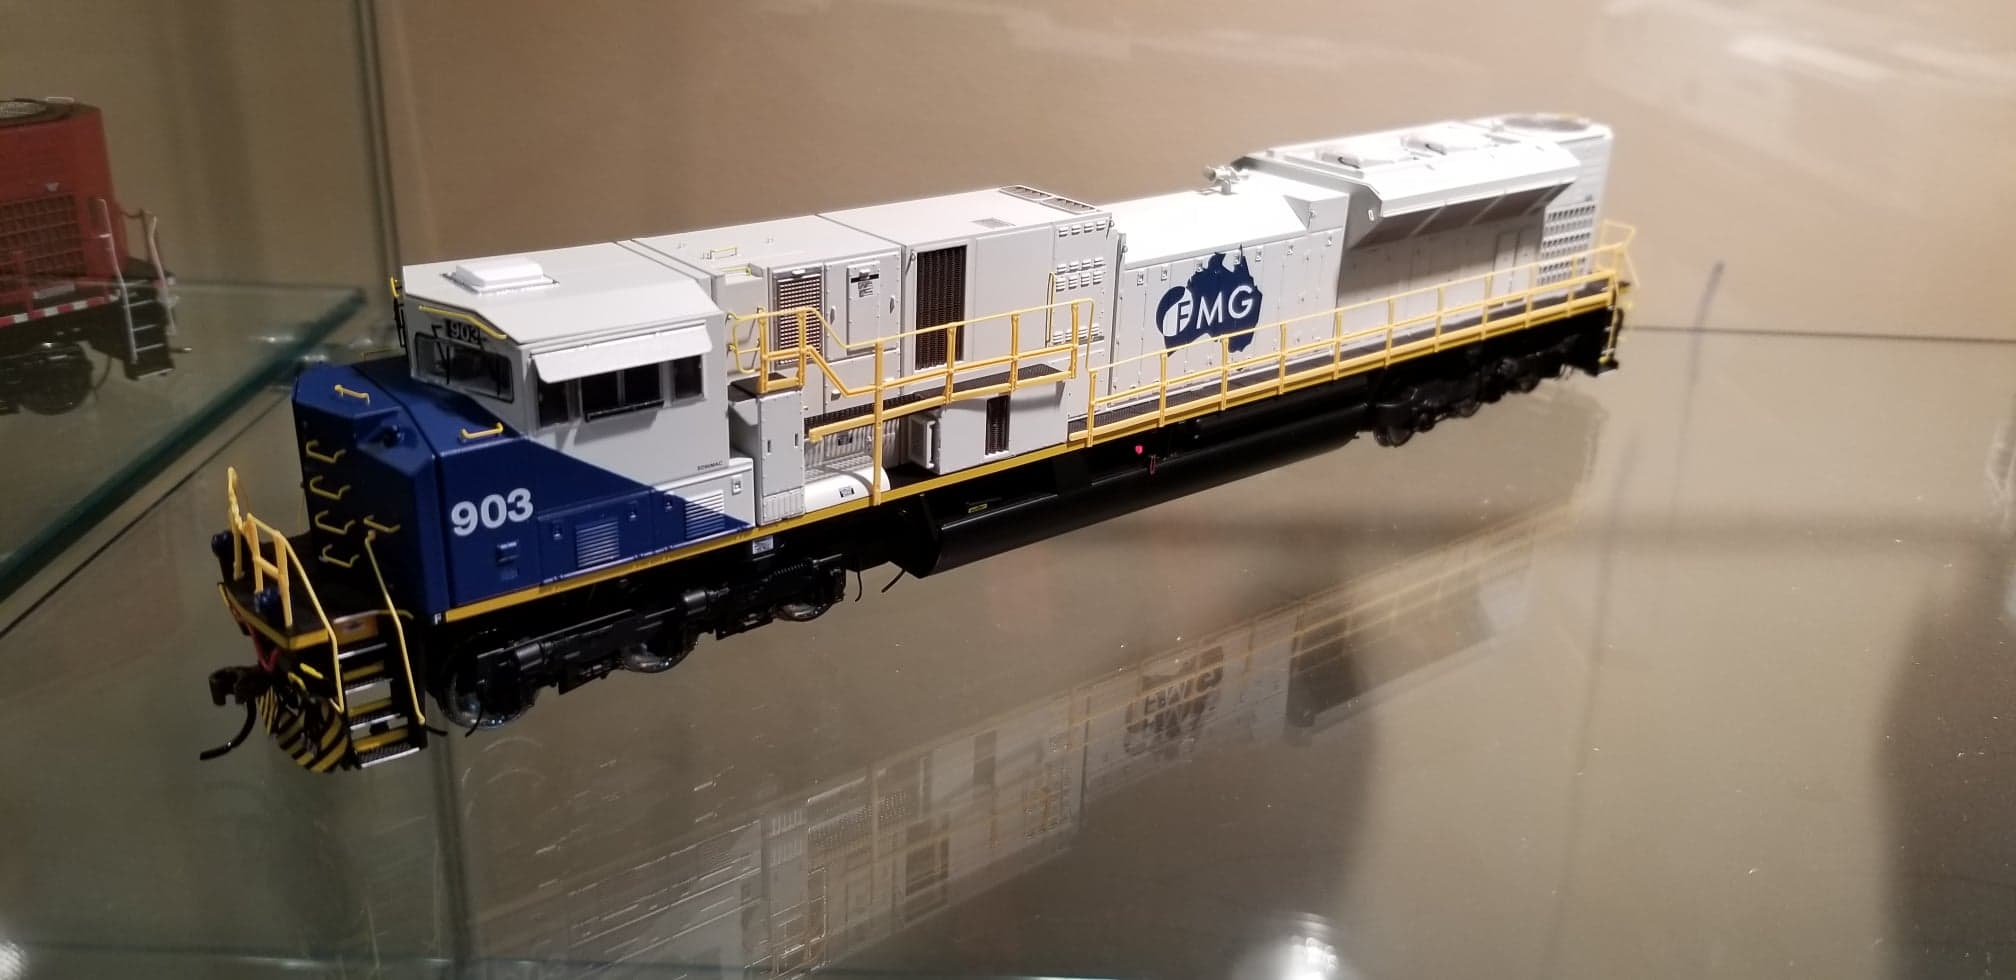 Athearn Genesis G27237 HO Scale SD90MAC-H Phase 2 DCC Ready FMG 904